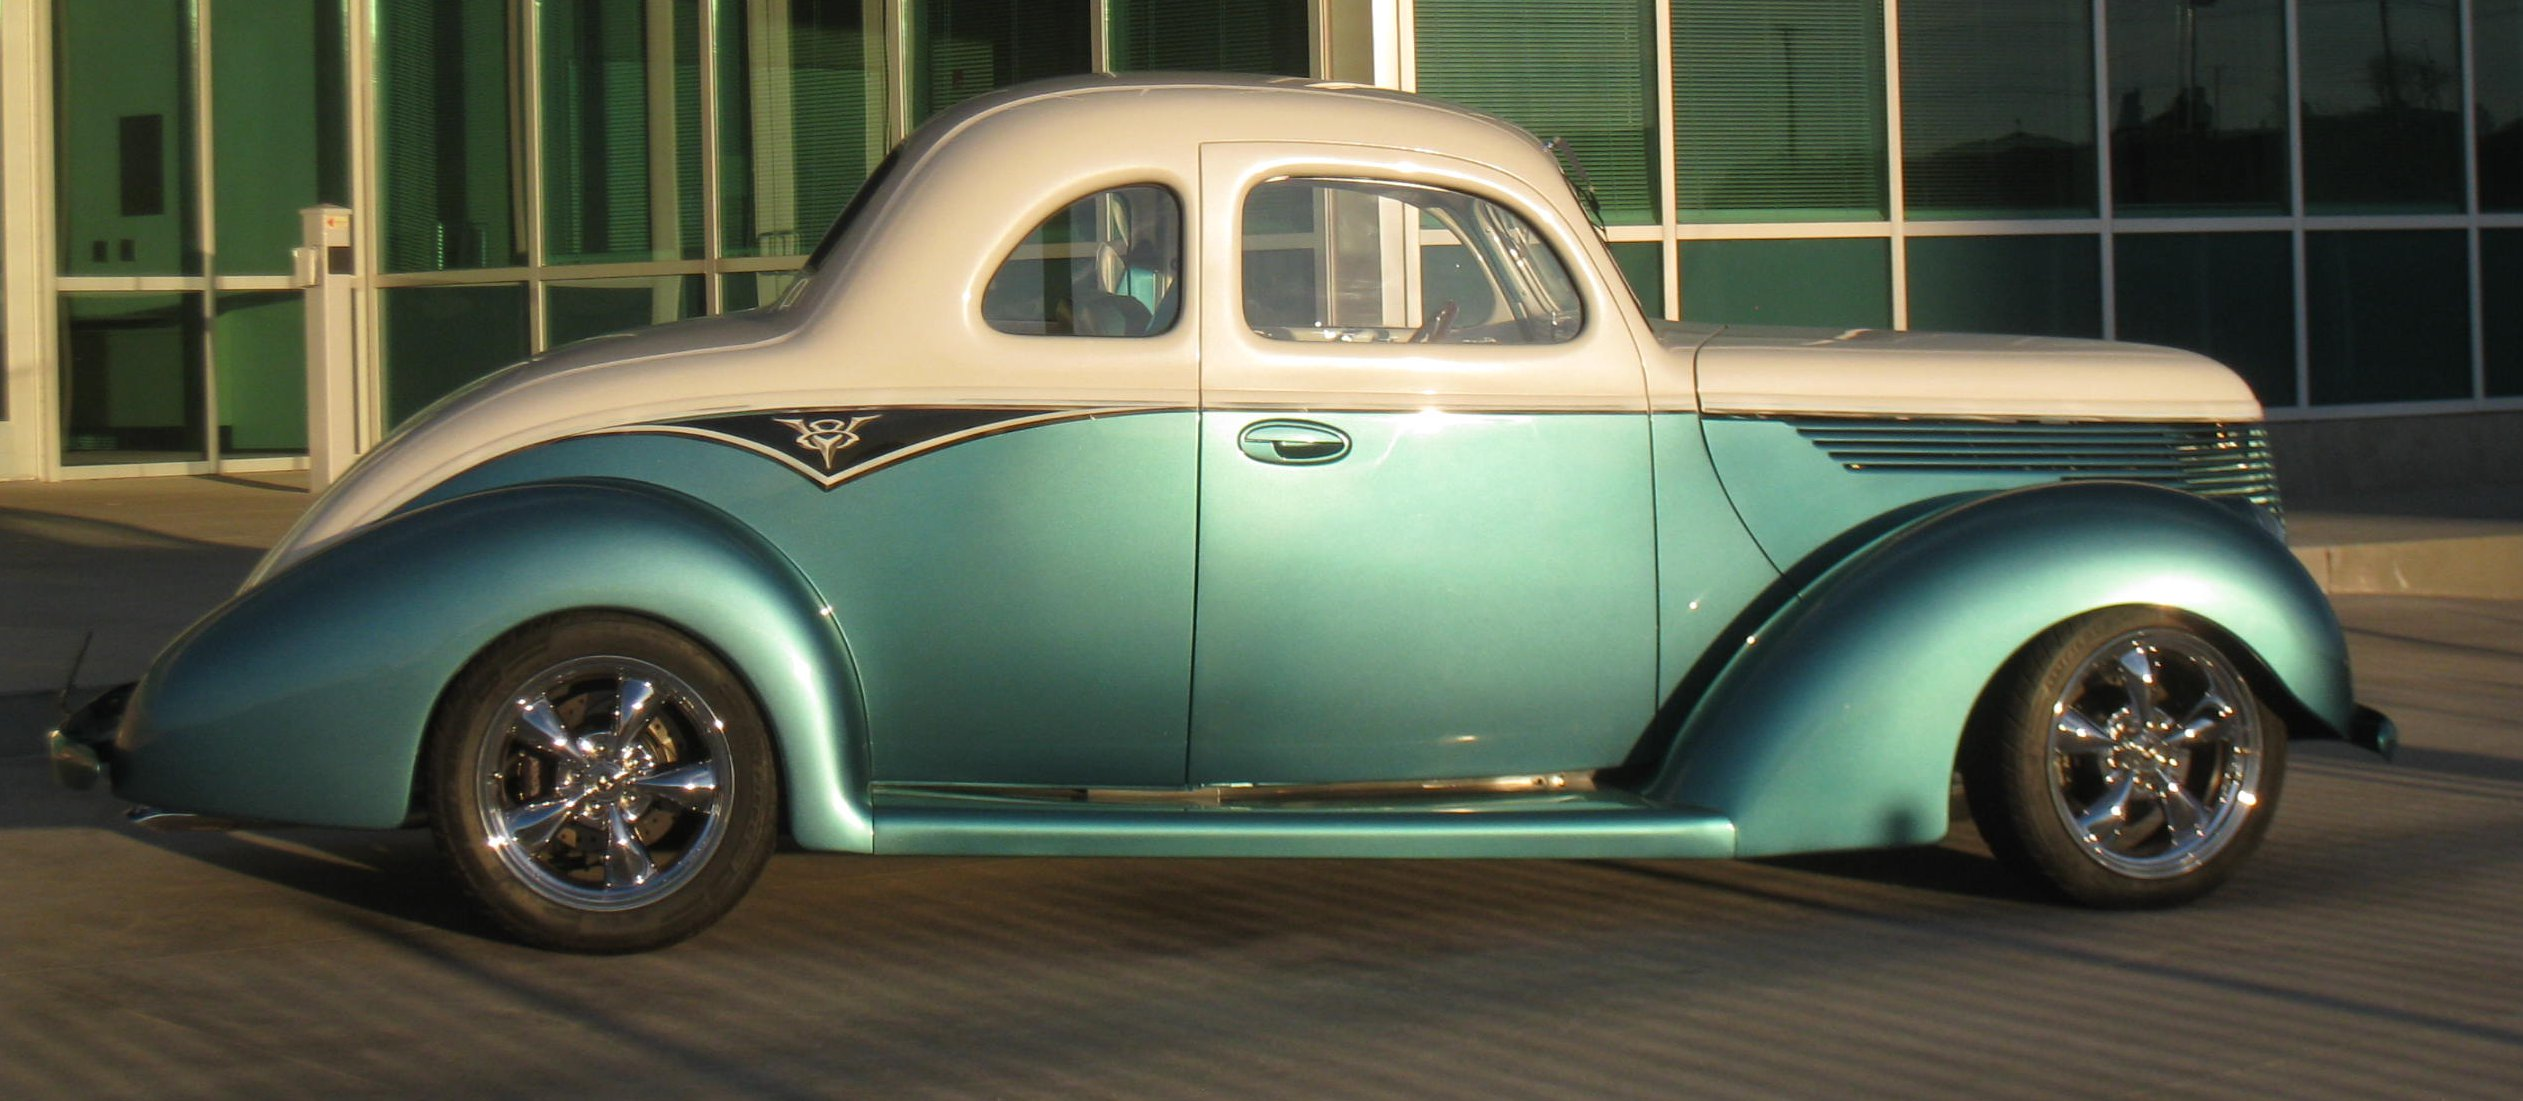 J and b classics and equipment 1938 ford two door coupe for 1938 ford 2 door coupe